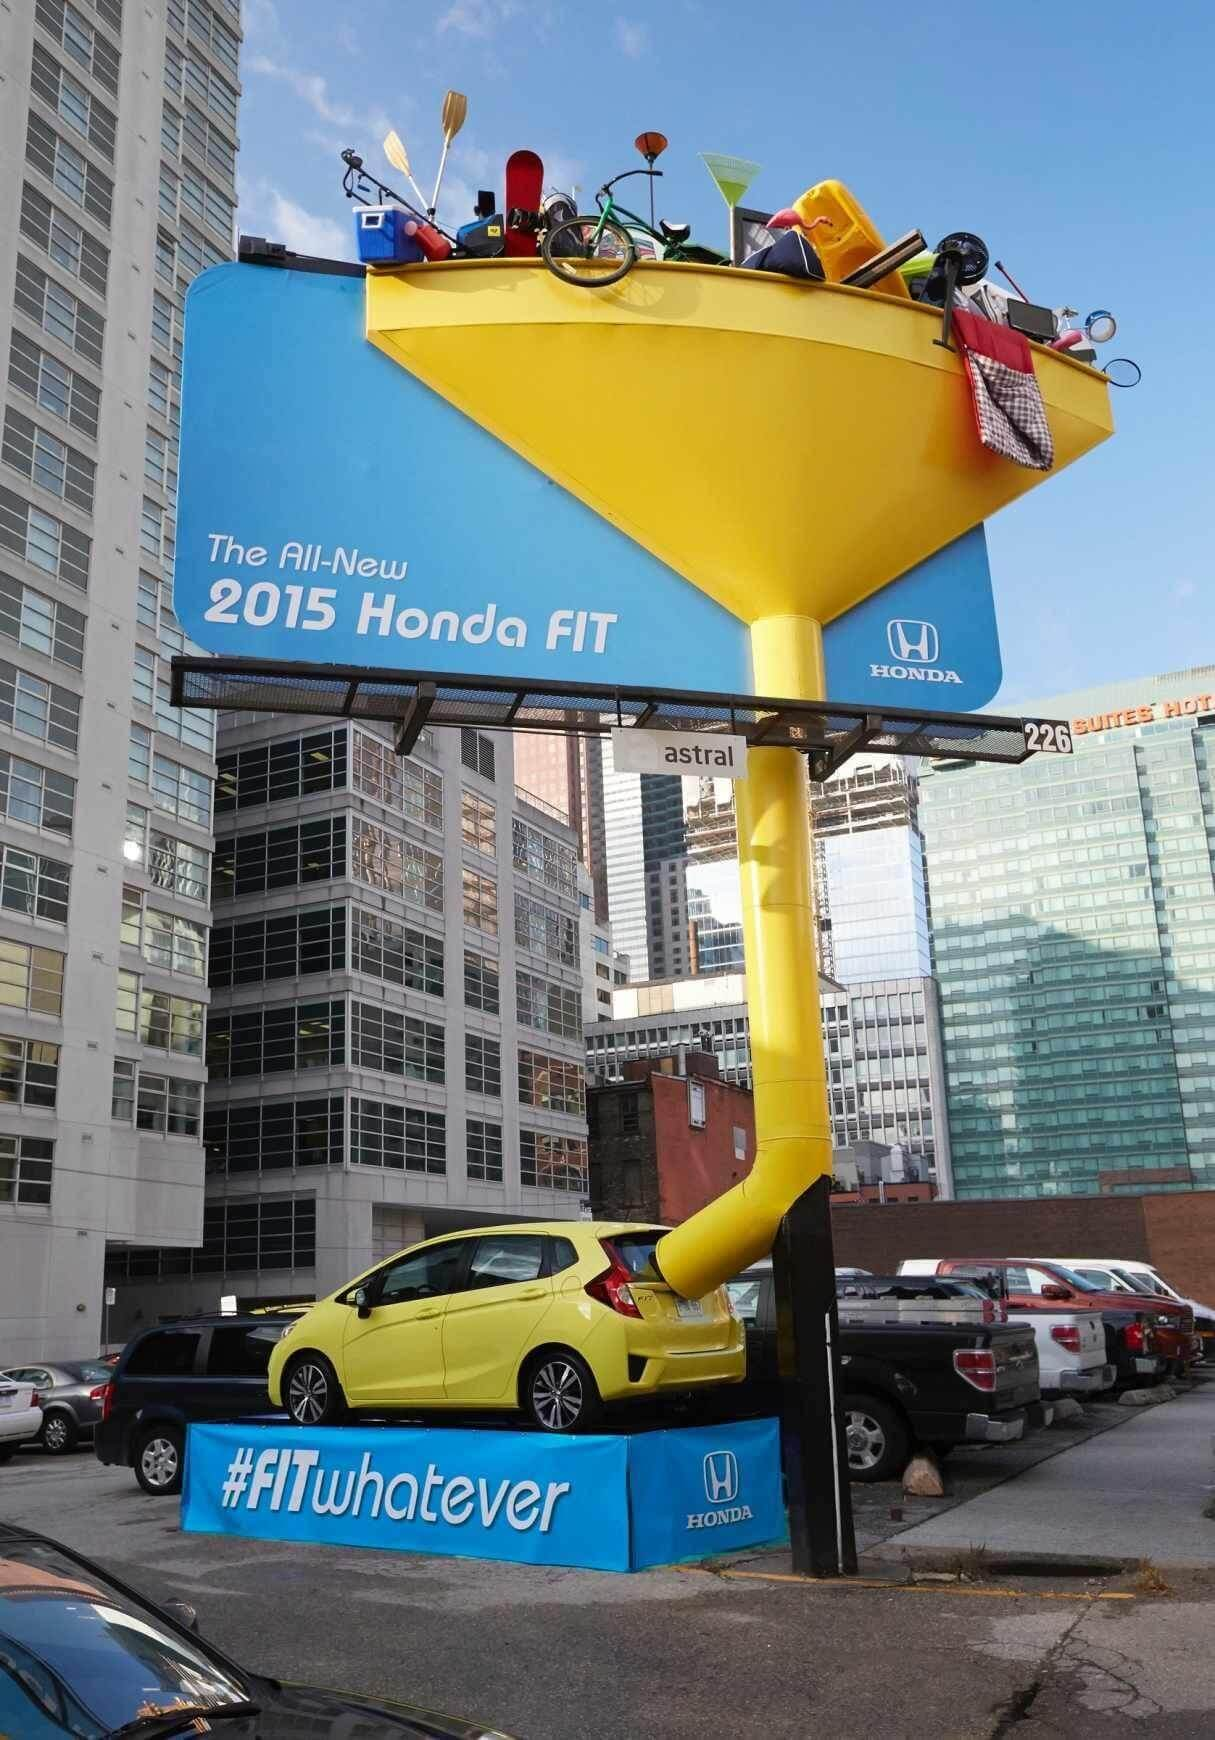 Great OOH advertising tells a story and highlights key qualities about the product